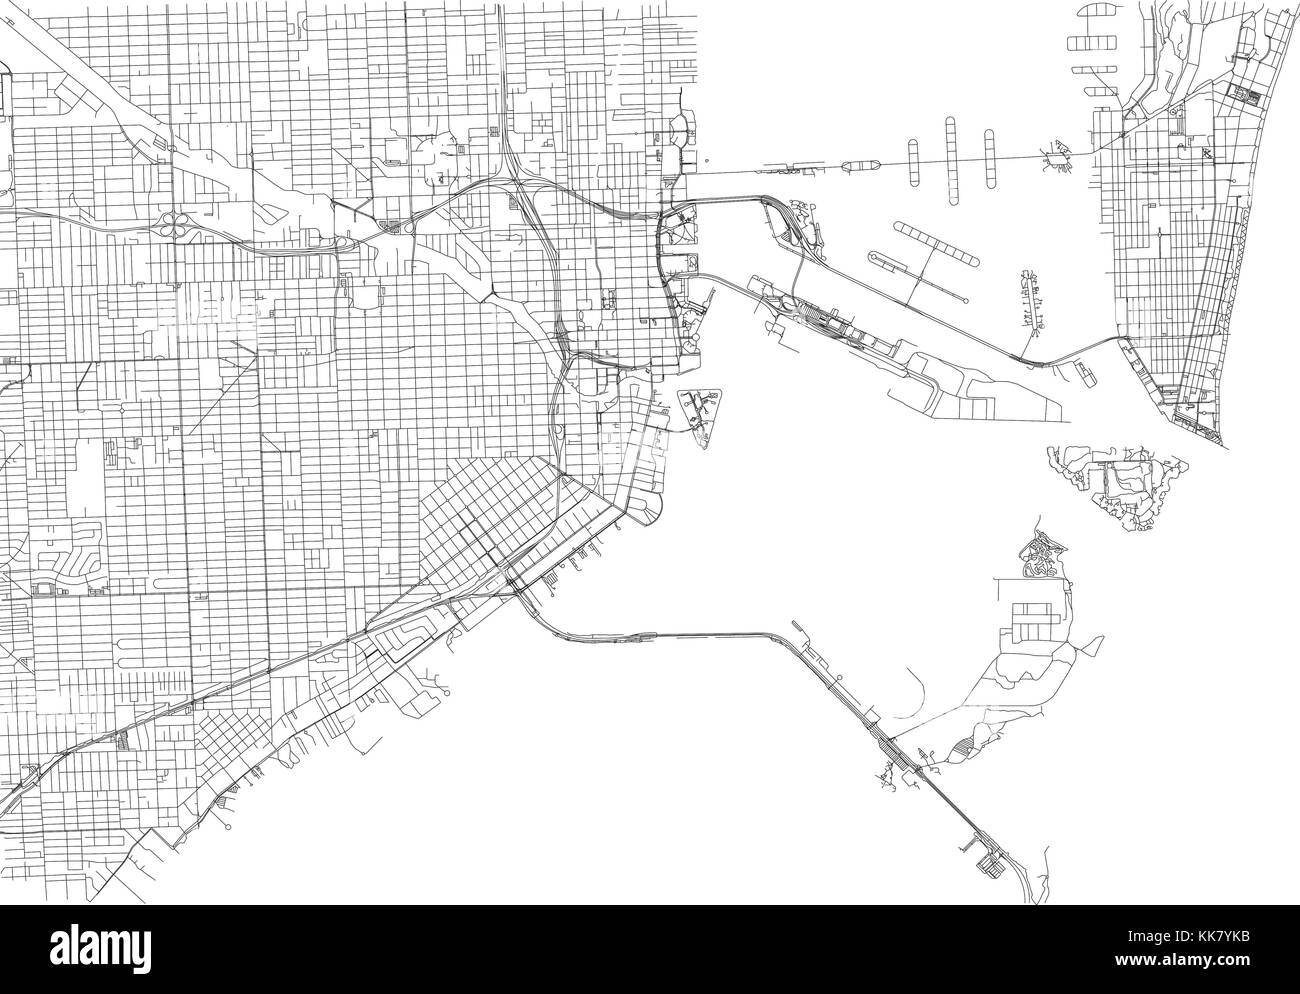 United States Map Florida.Streets Of Miami City Map Florida United States Street Map Stock